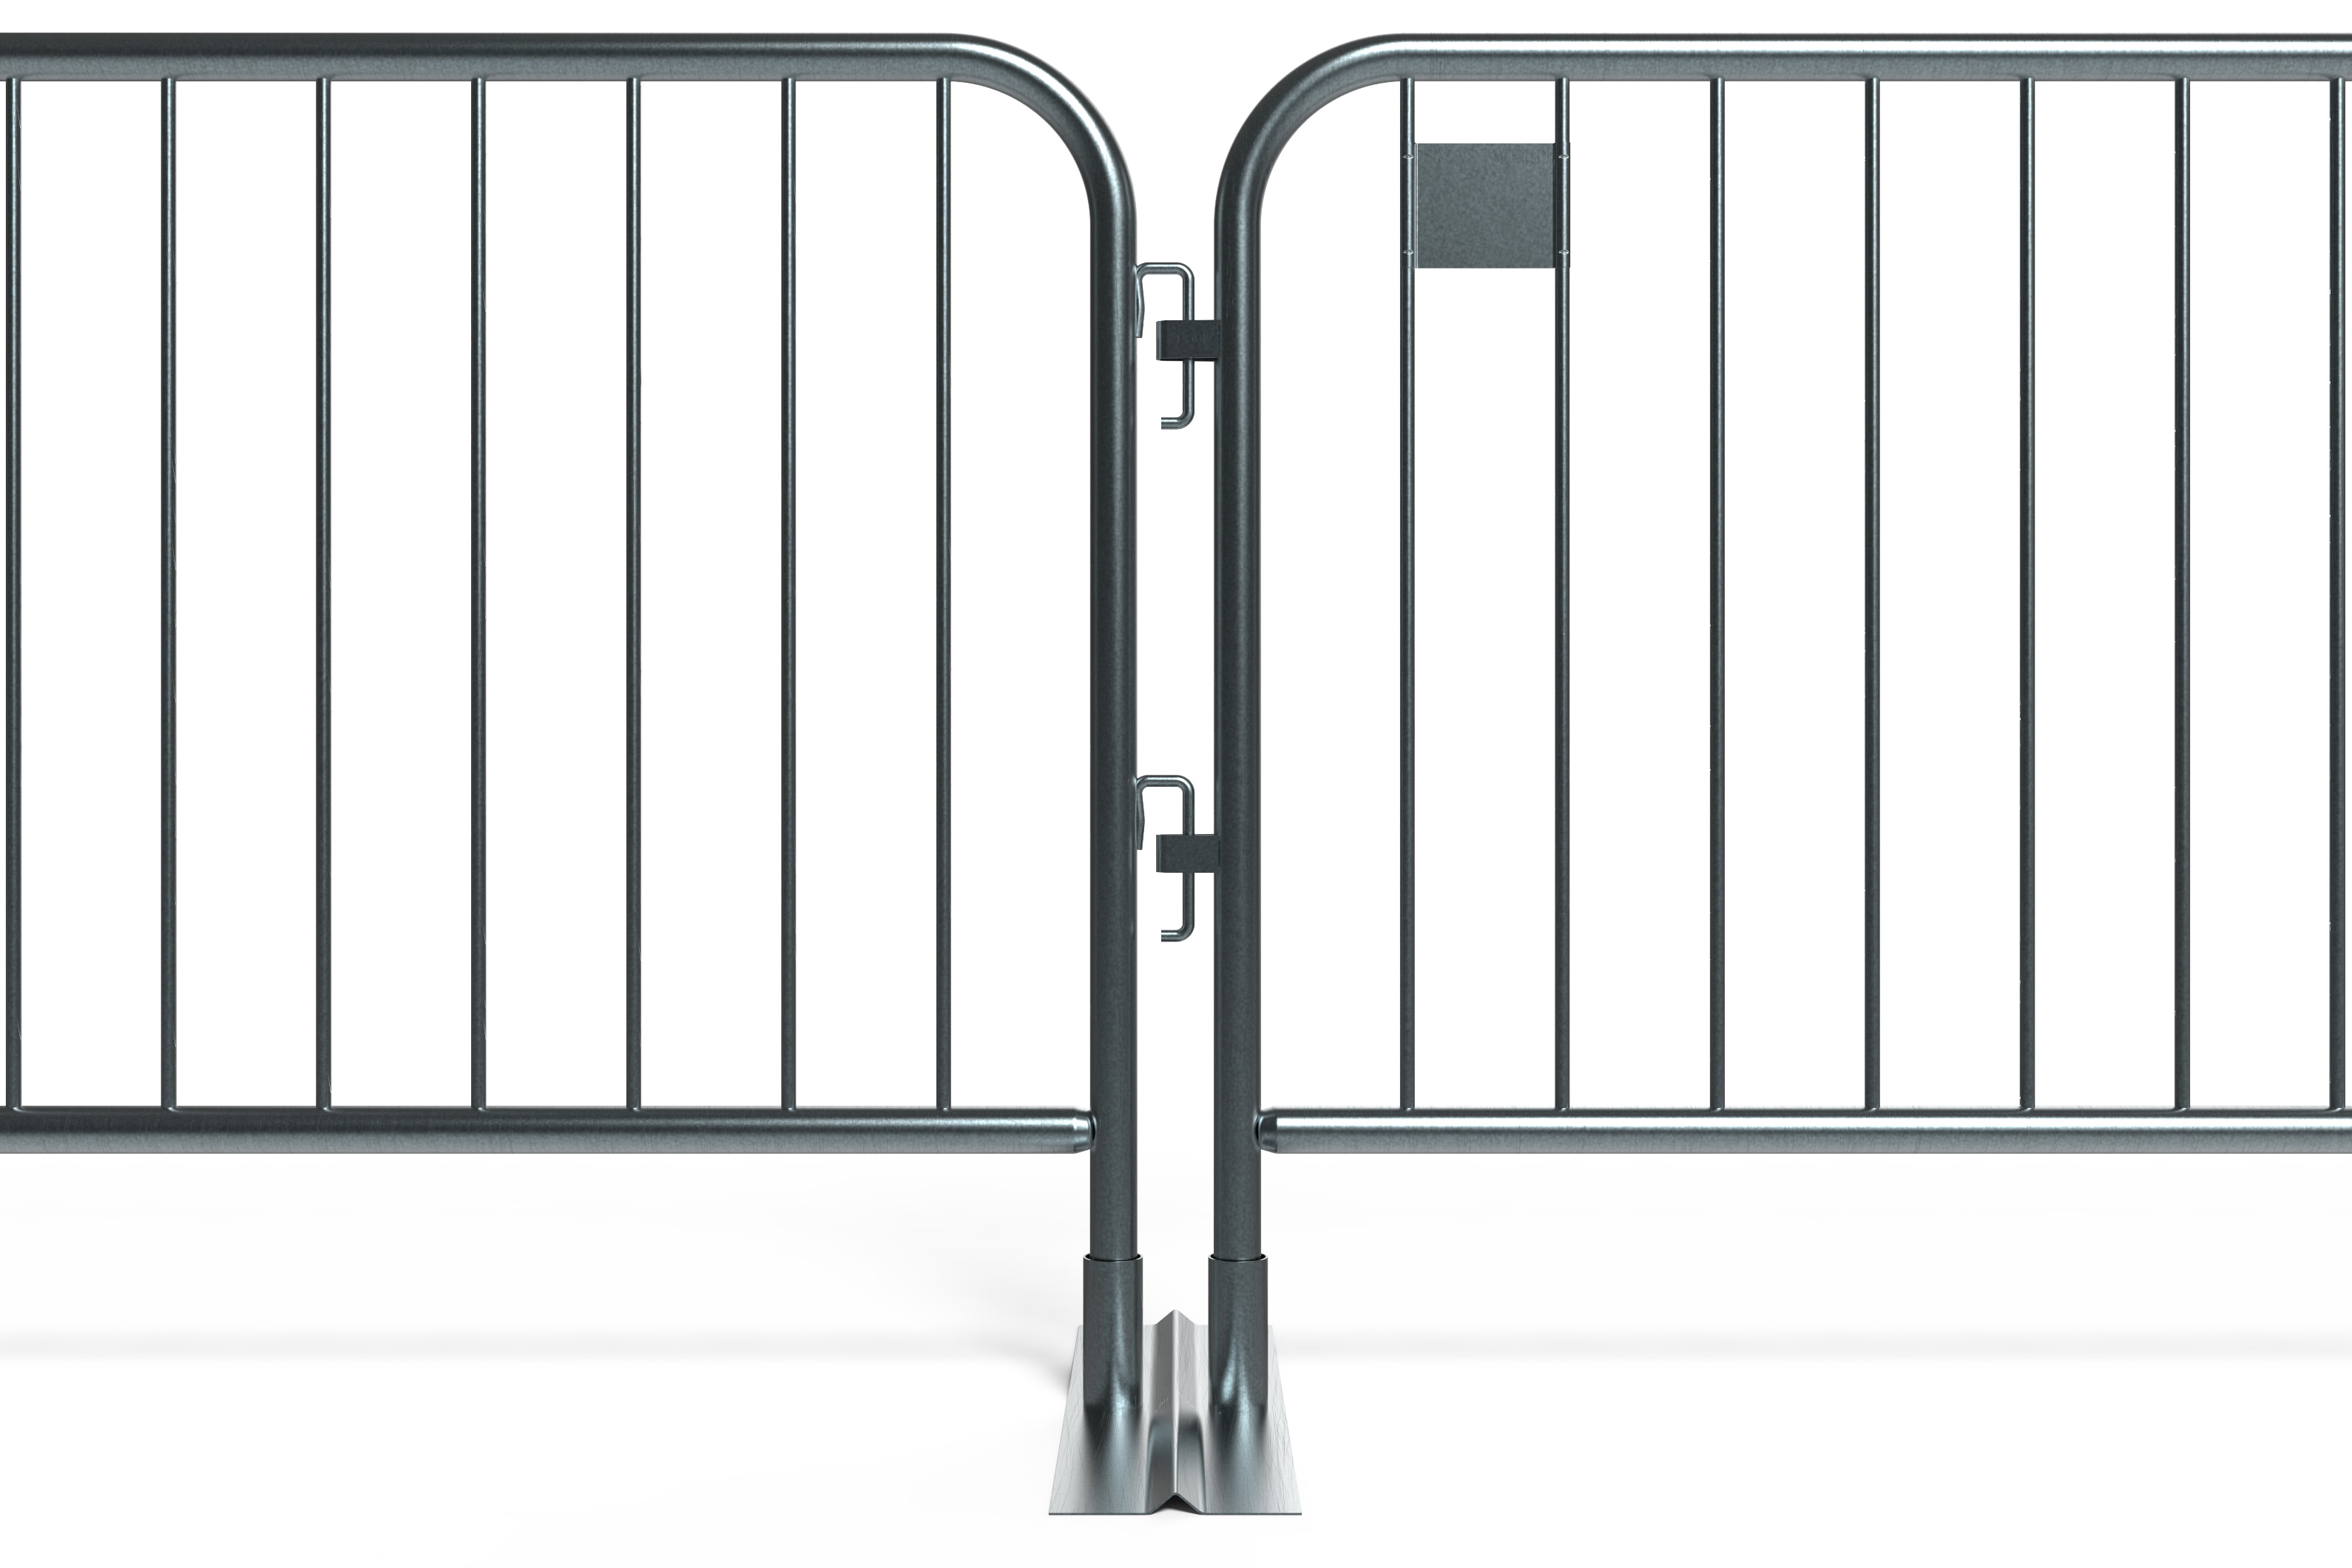 Connected Metal Barricades